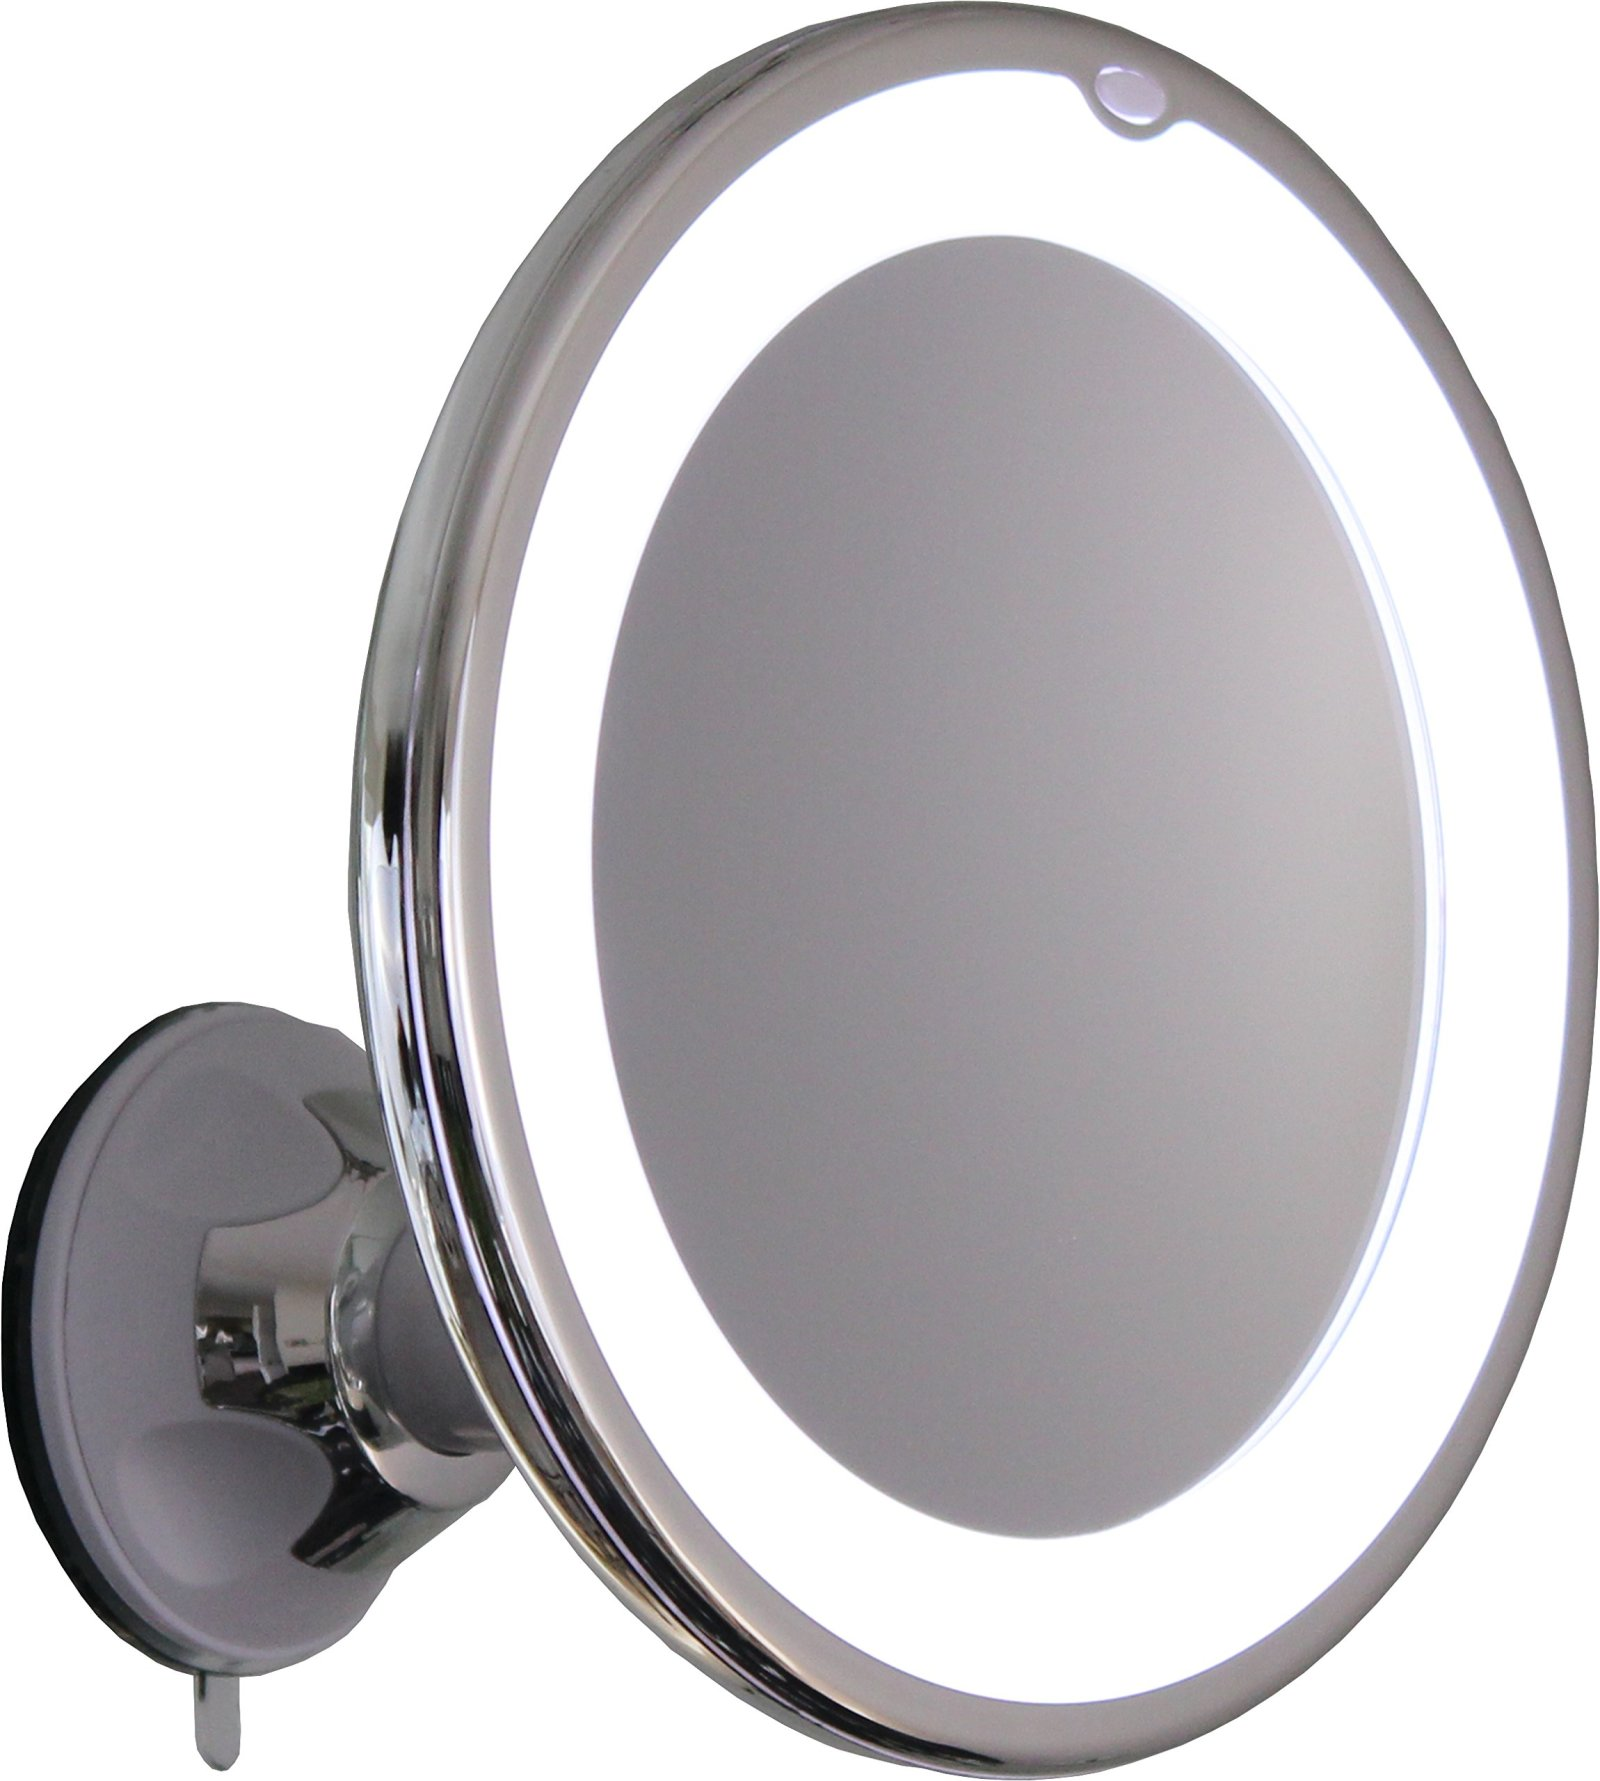 pillows decor pdx vanity wayfair reviews beautify mirror makeup lighted led